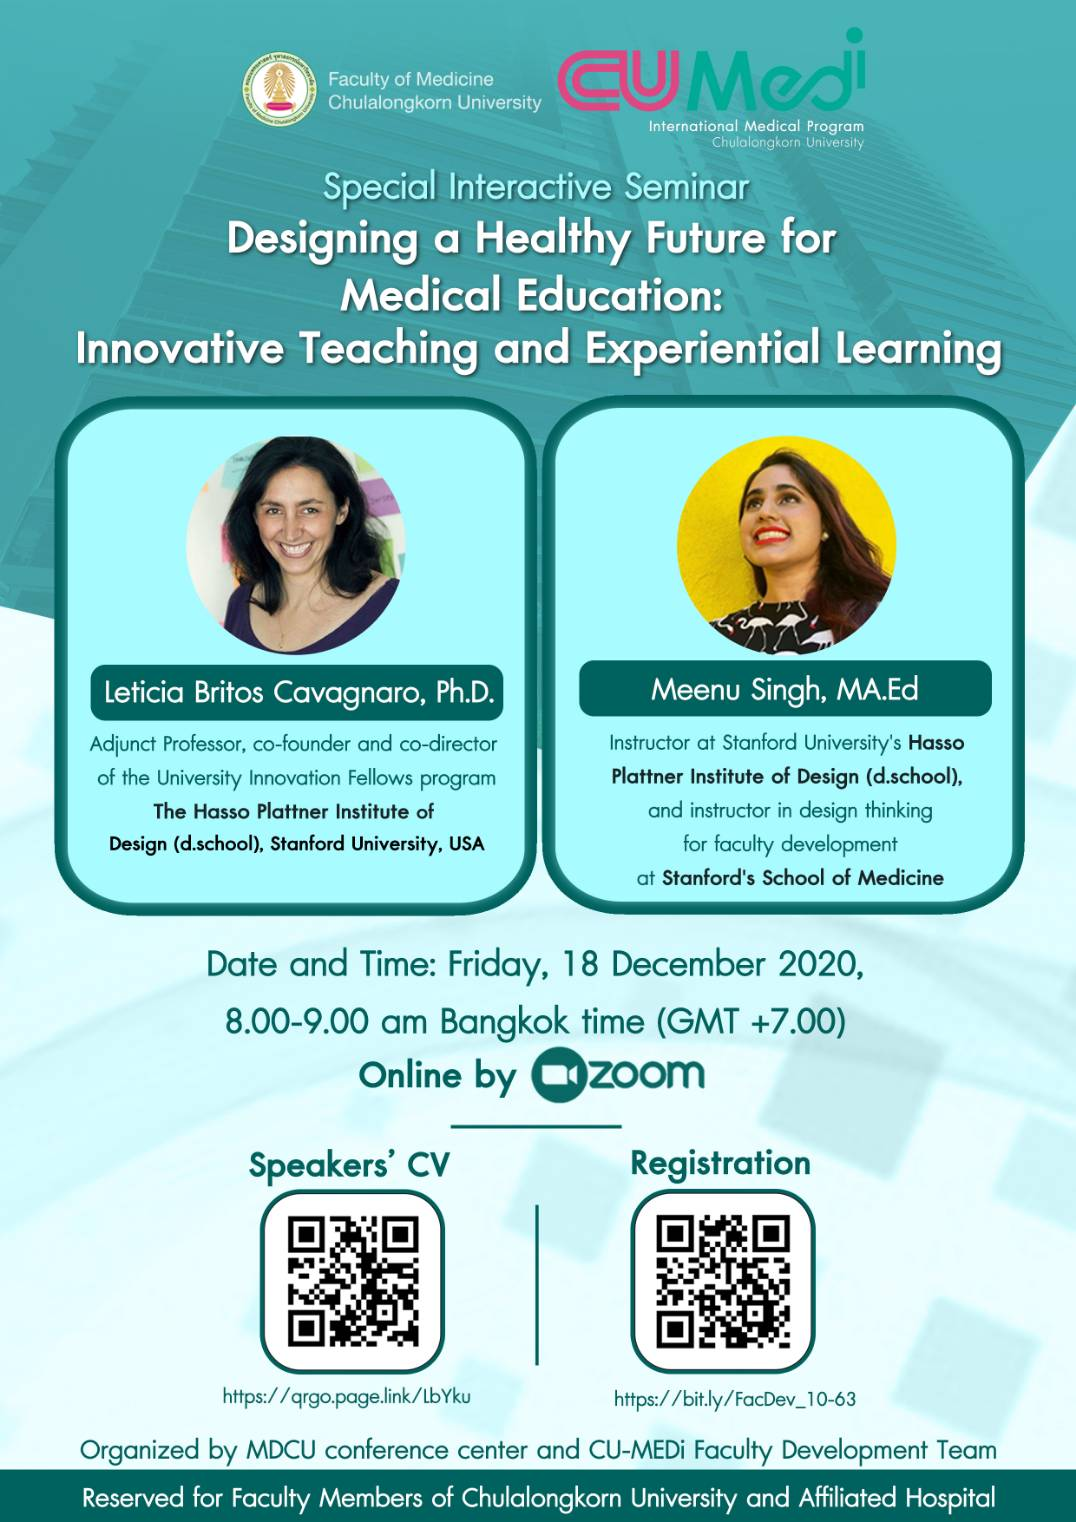 Designing a Healthy Future for Medical Education: Innovative Teaching and Experiential Learning